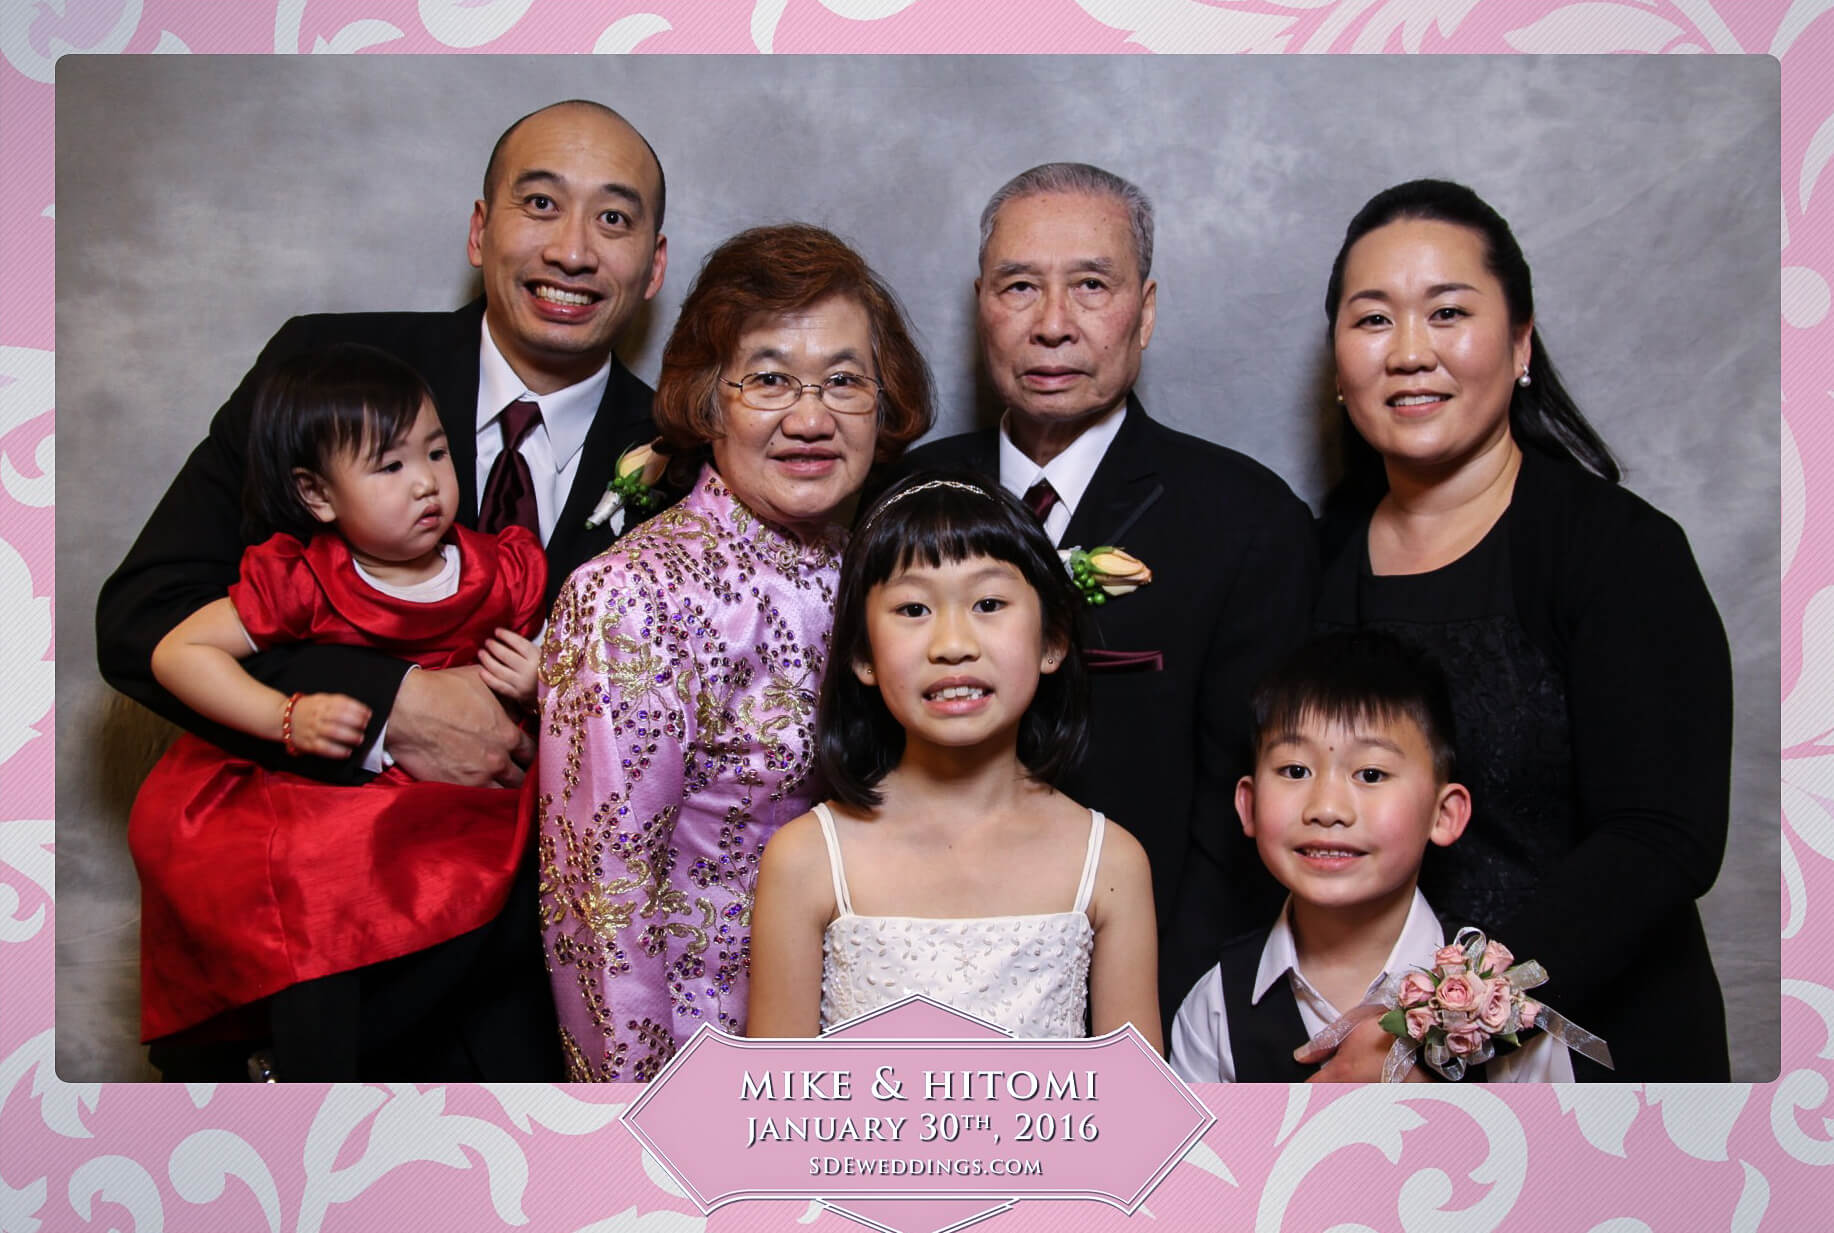 Toronto Spring Villa Wedding Photo Booth Rental 7